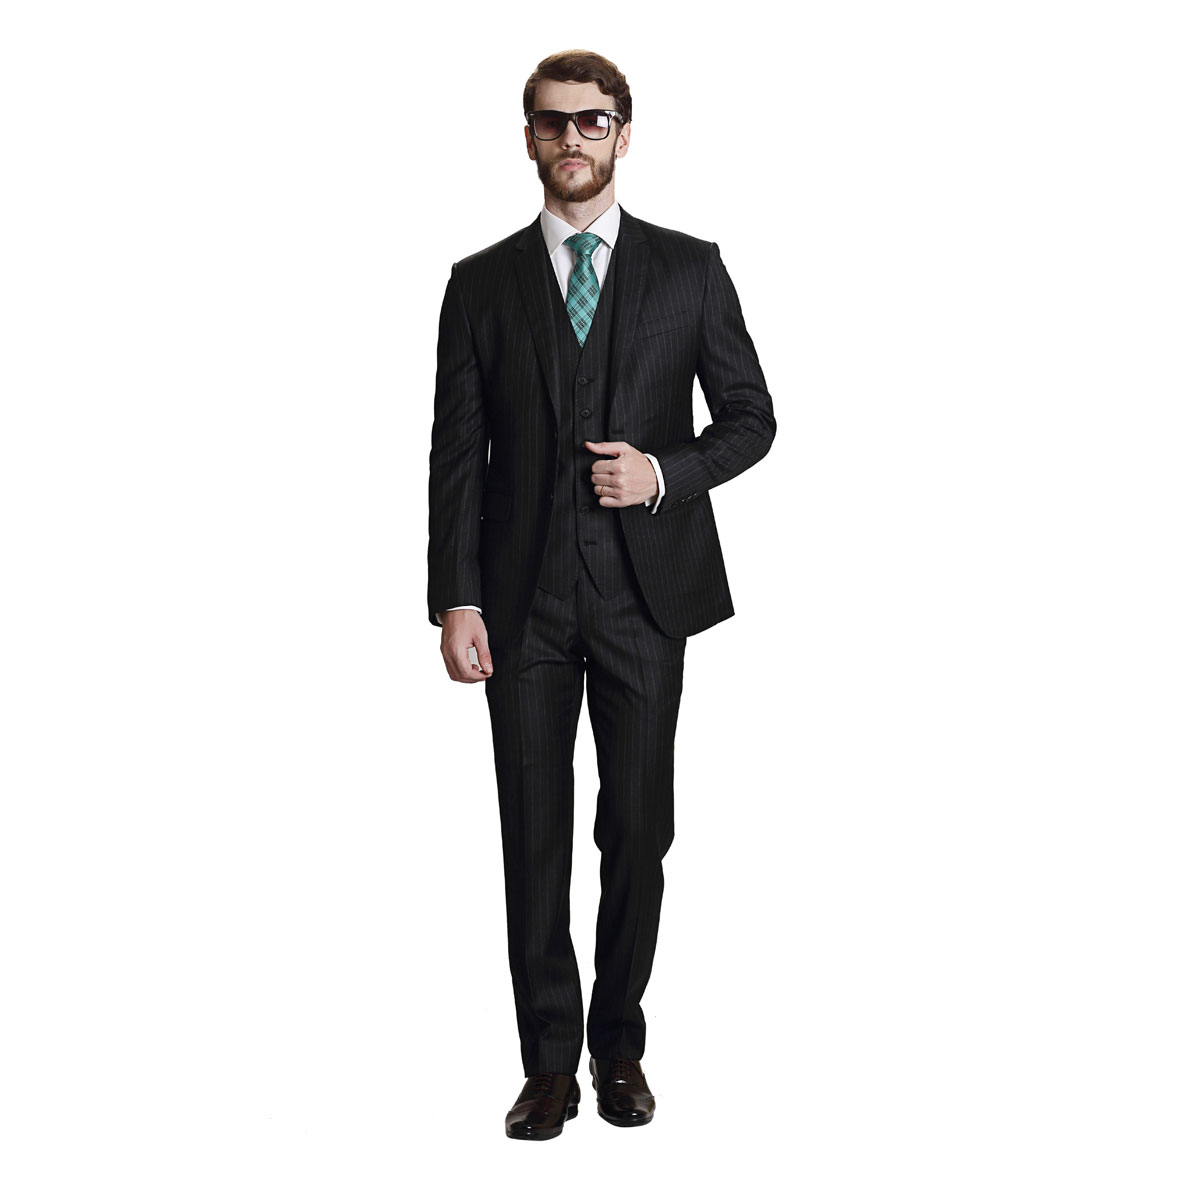 Ode To A Black Stripe Suit - Best Bespoke Suits. Premium Custom